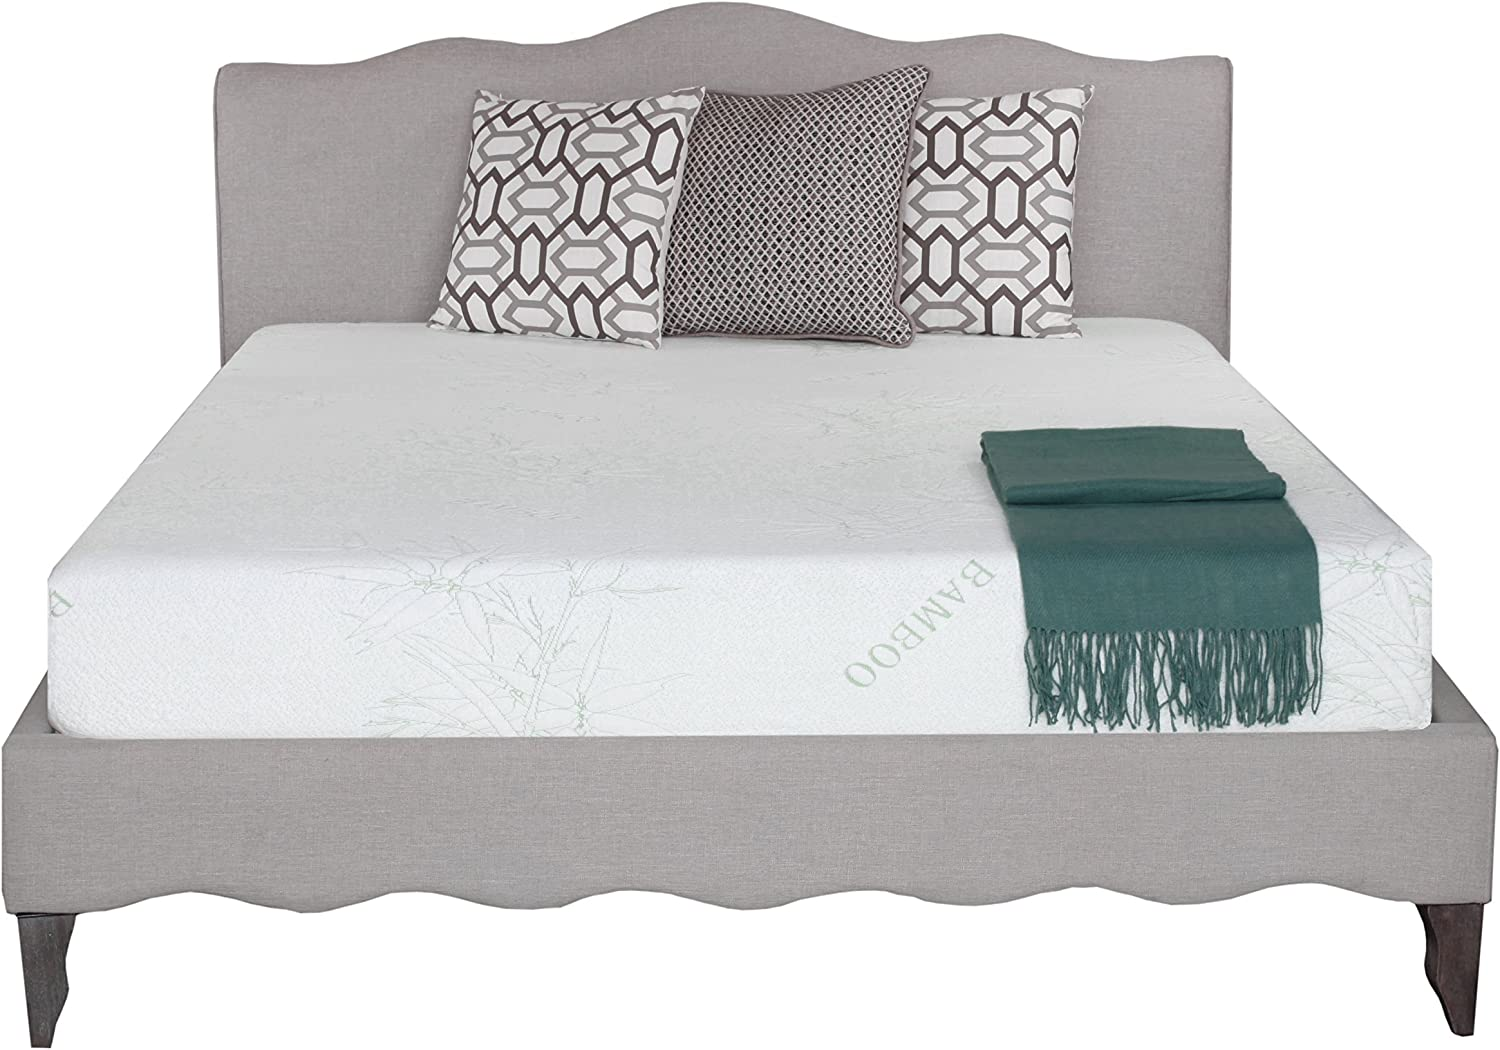 Irvine Home Collection 8-Inch Gel Memory Foam Mattress-Twin Size